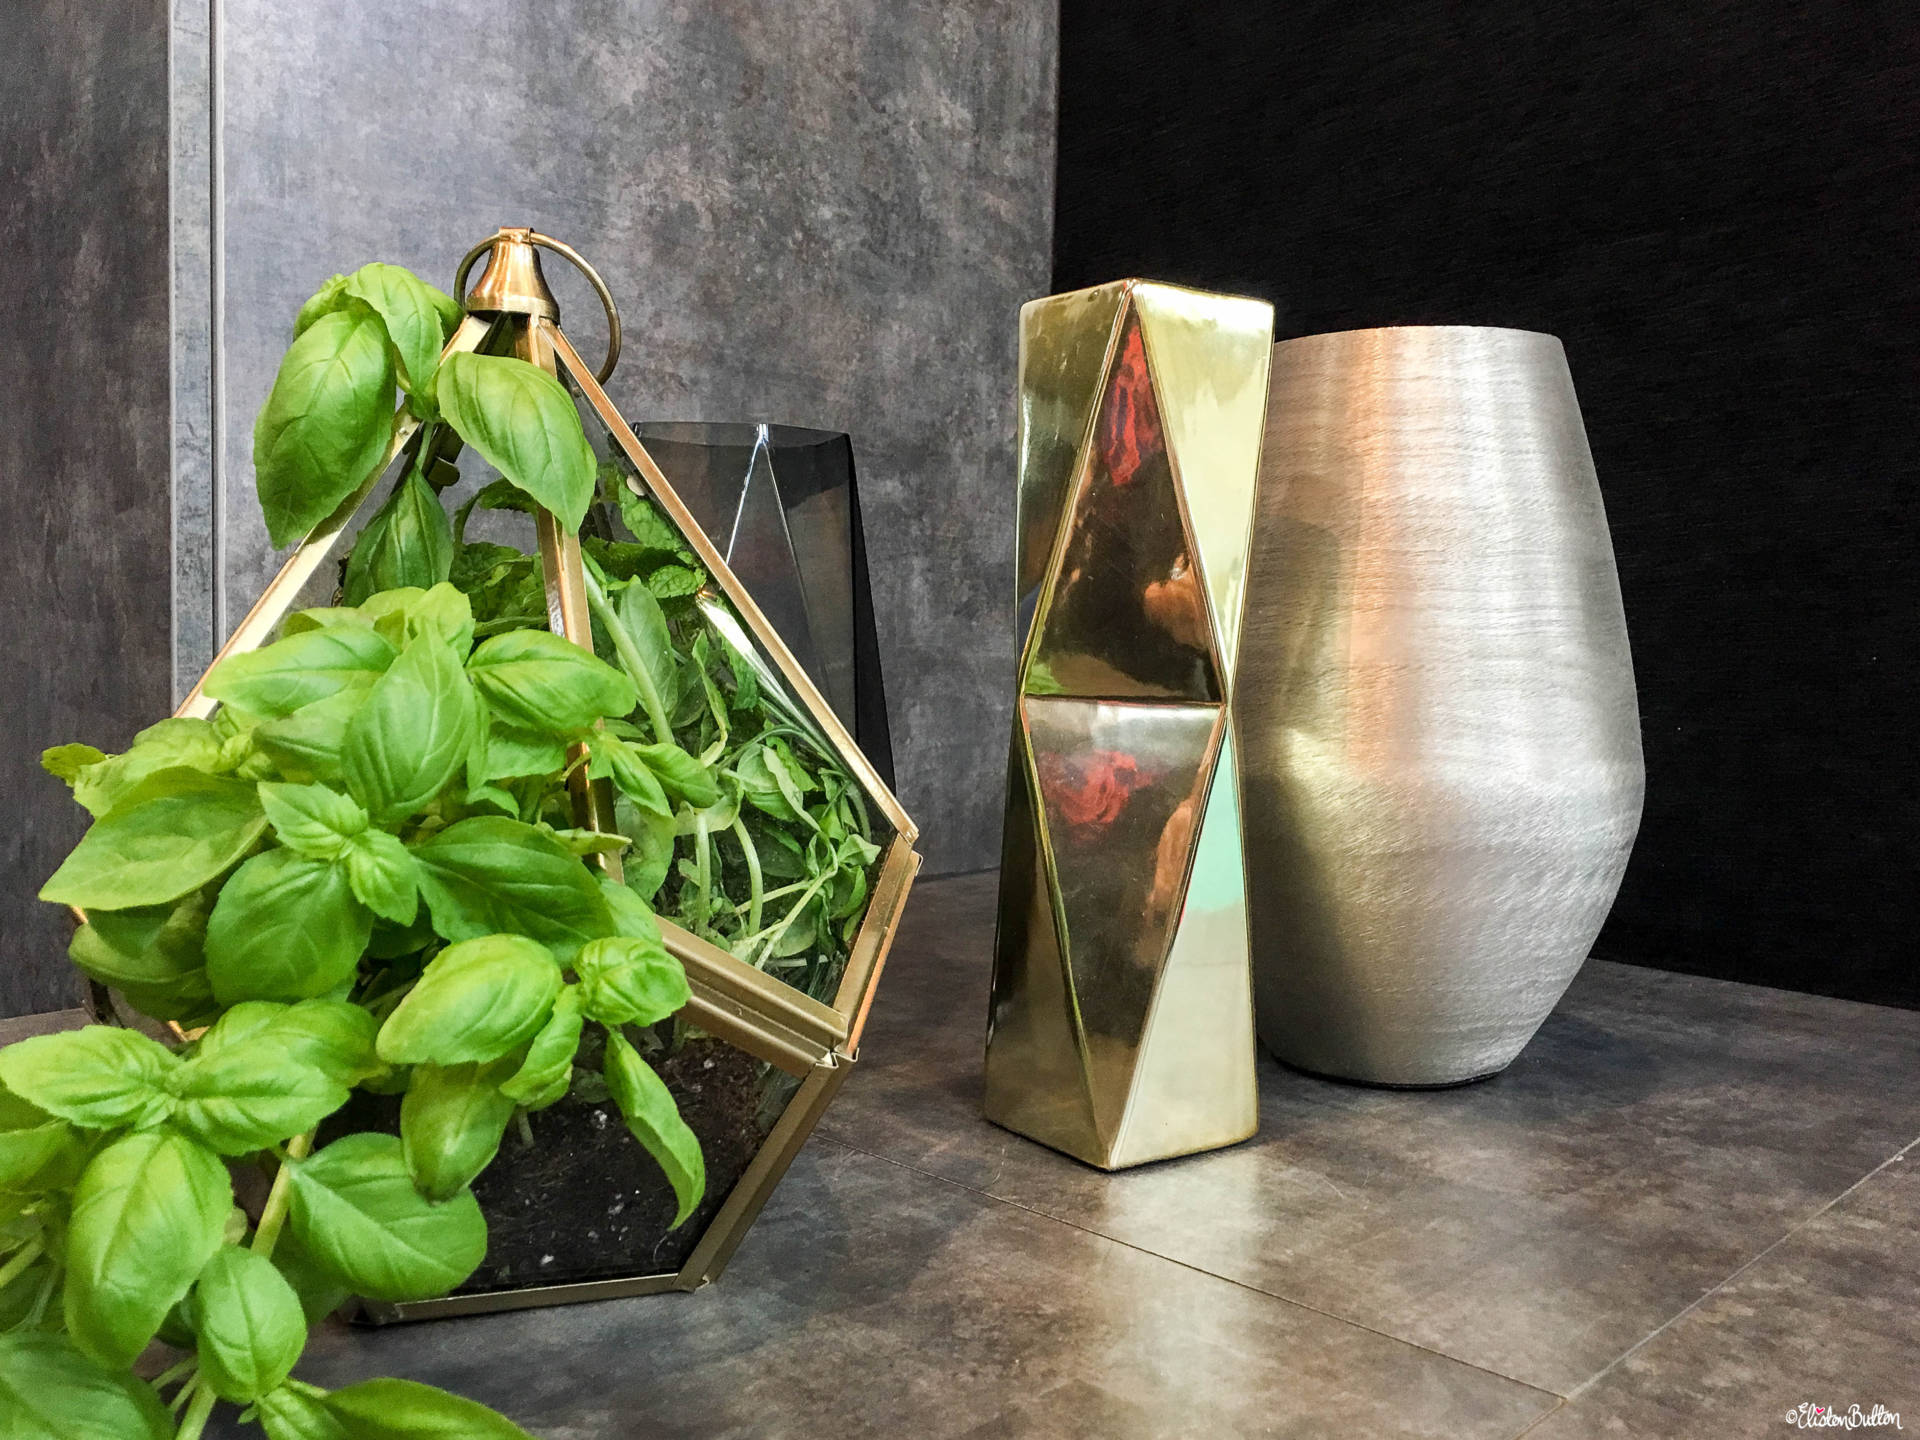 Brushed Metal Vases and a Gold Metal Terranium Home Decor at at Grand Designs Live 2017 with Eliston Button - Grand Designs Live 2017 – Part One at www.elistonbutton.com - Eliston Button - That Crafty Kid – Art, Design, Craft & Adventure.